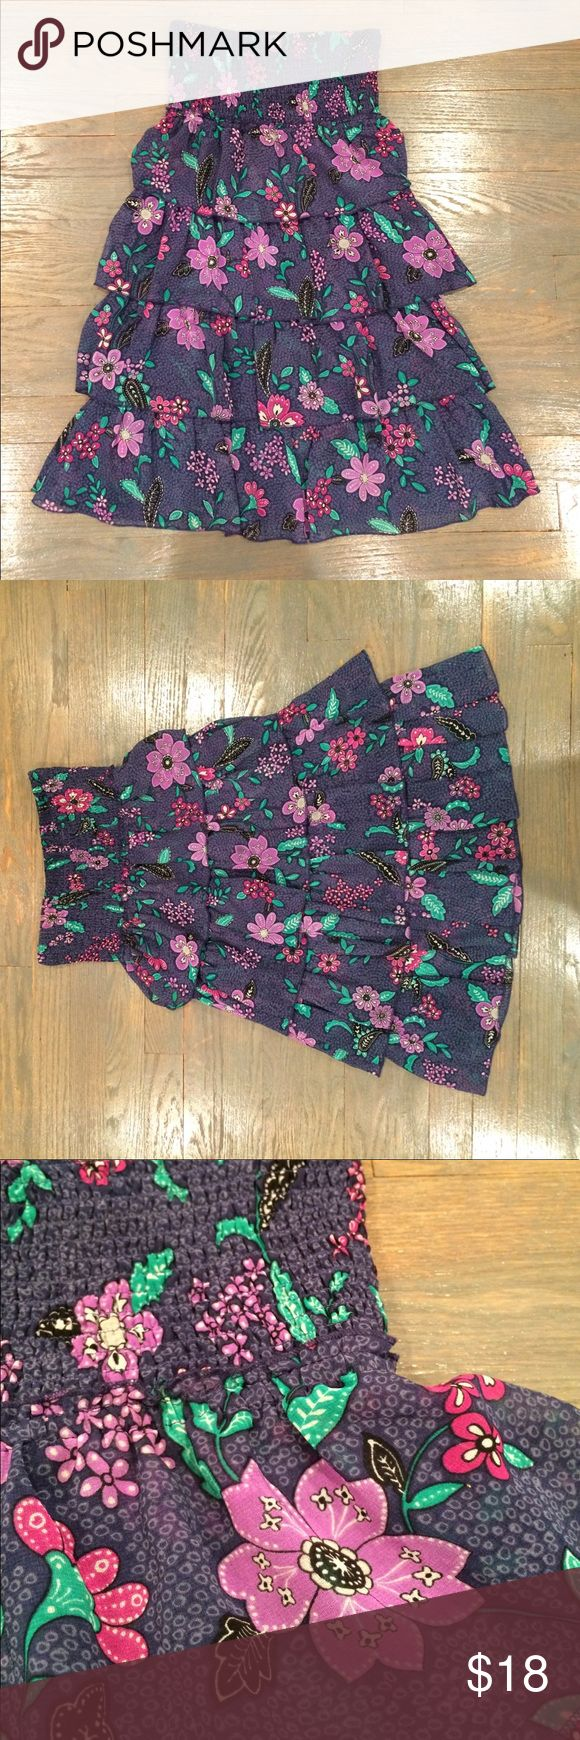 Floral, flowy, American eagle dress! Super cute ruffled floral summer dress. Serves great as a going out dress or as a cover up! American Eagle Outfitters Dresses Strapless